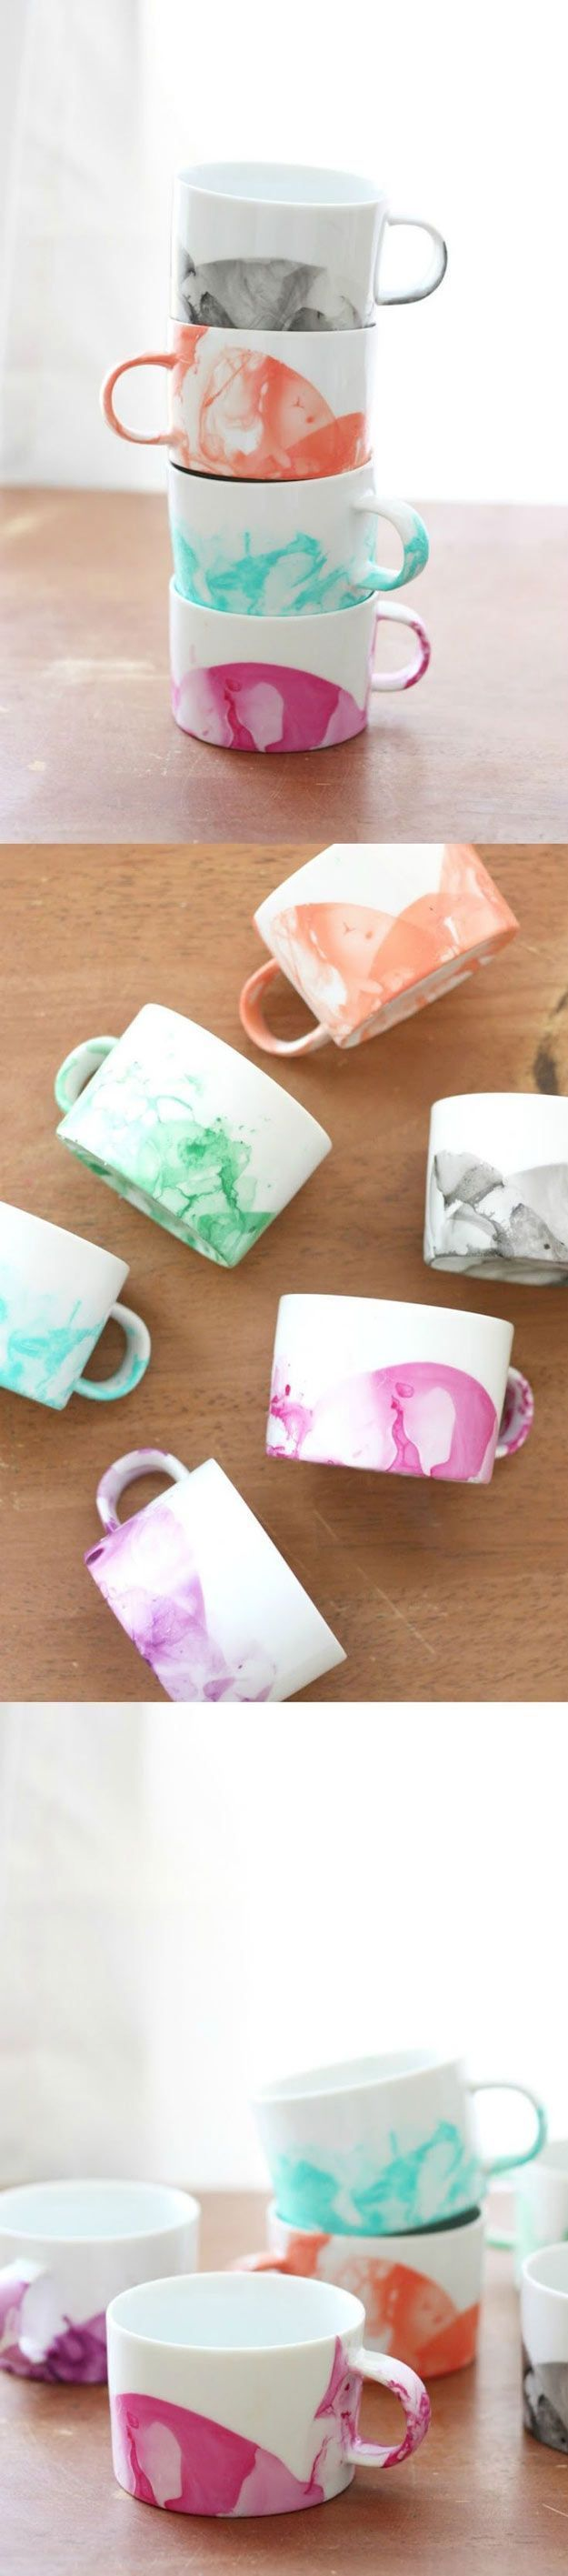 47 Fun Pinterest Crafts That Aren't Impossible #craftstosell